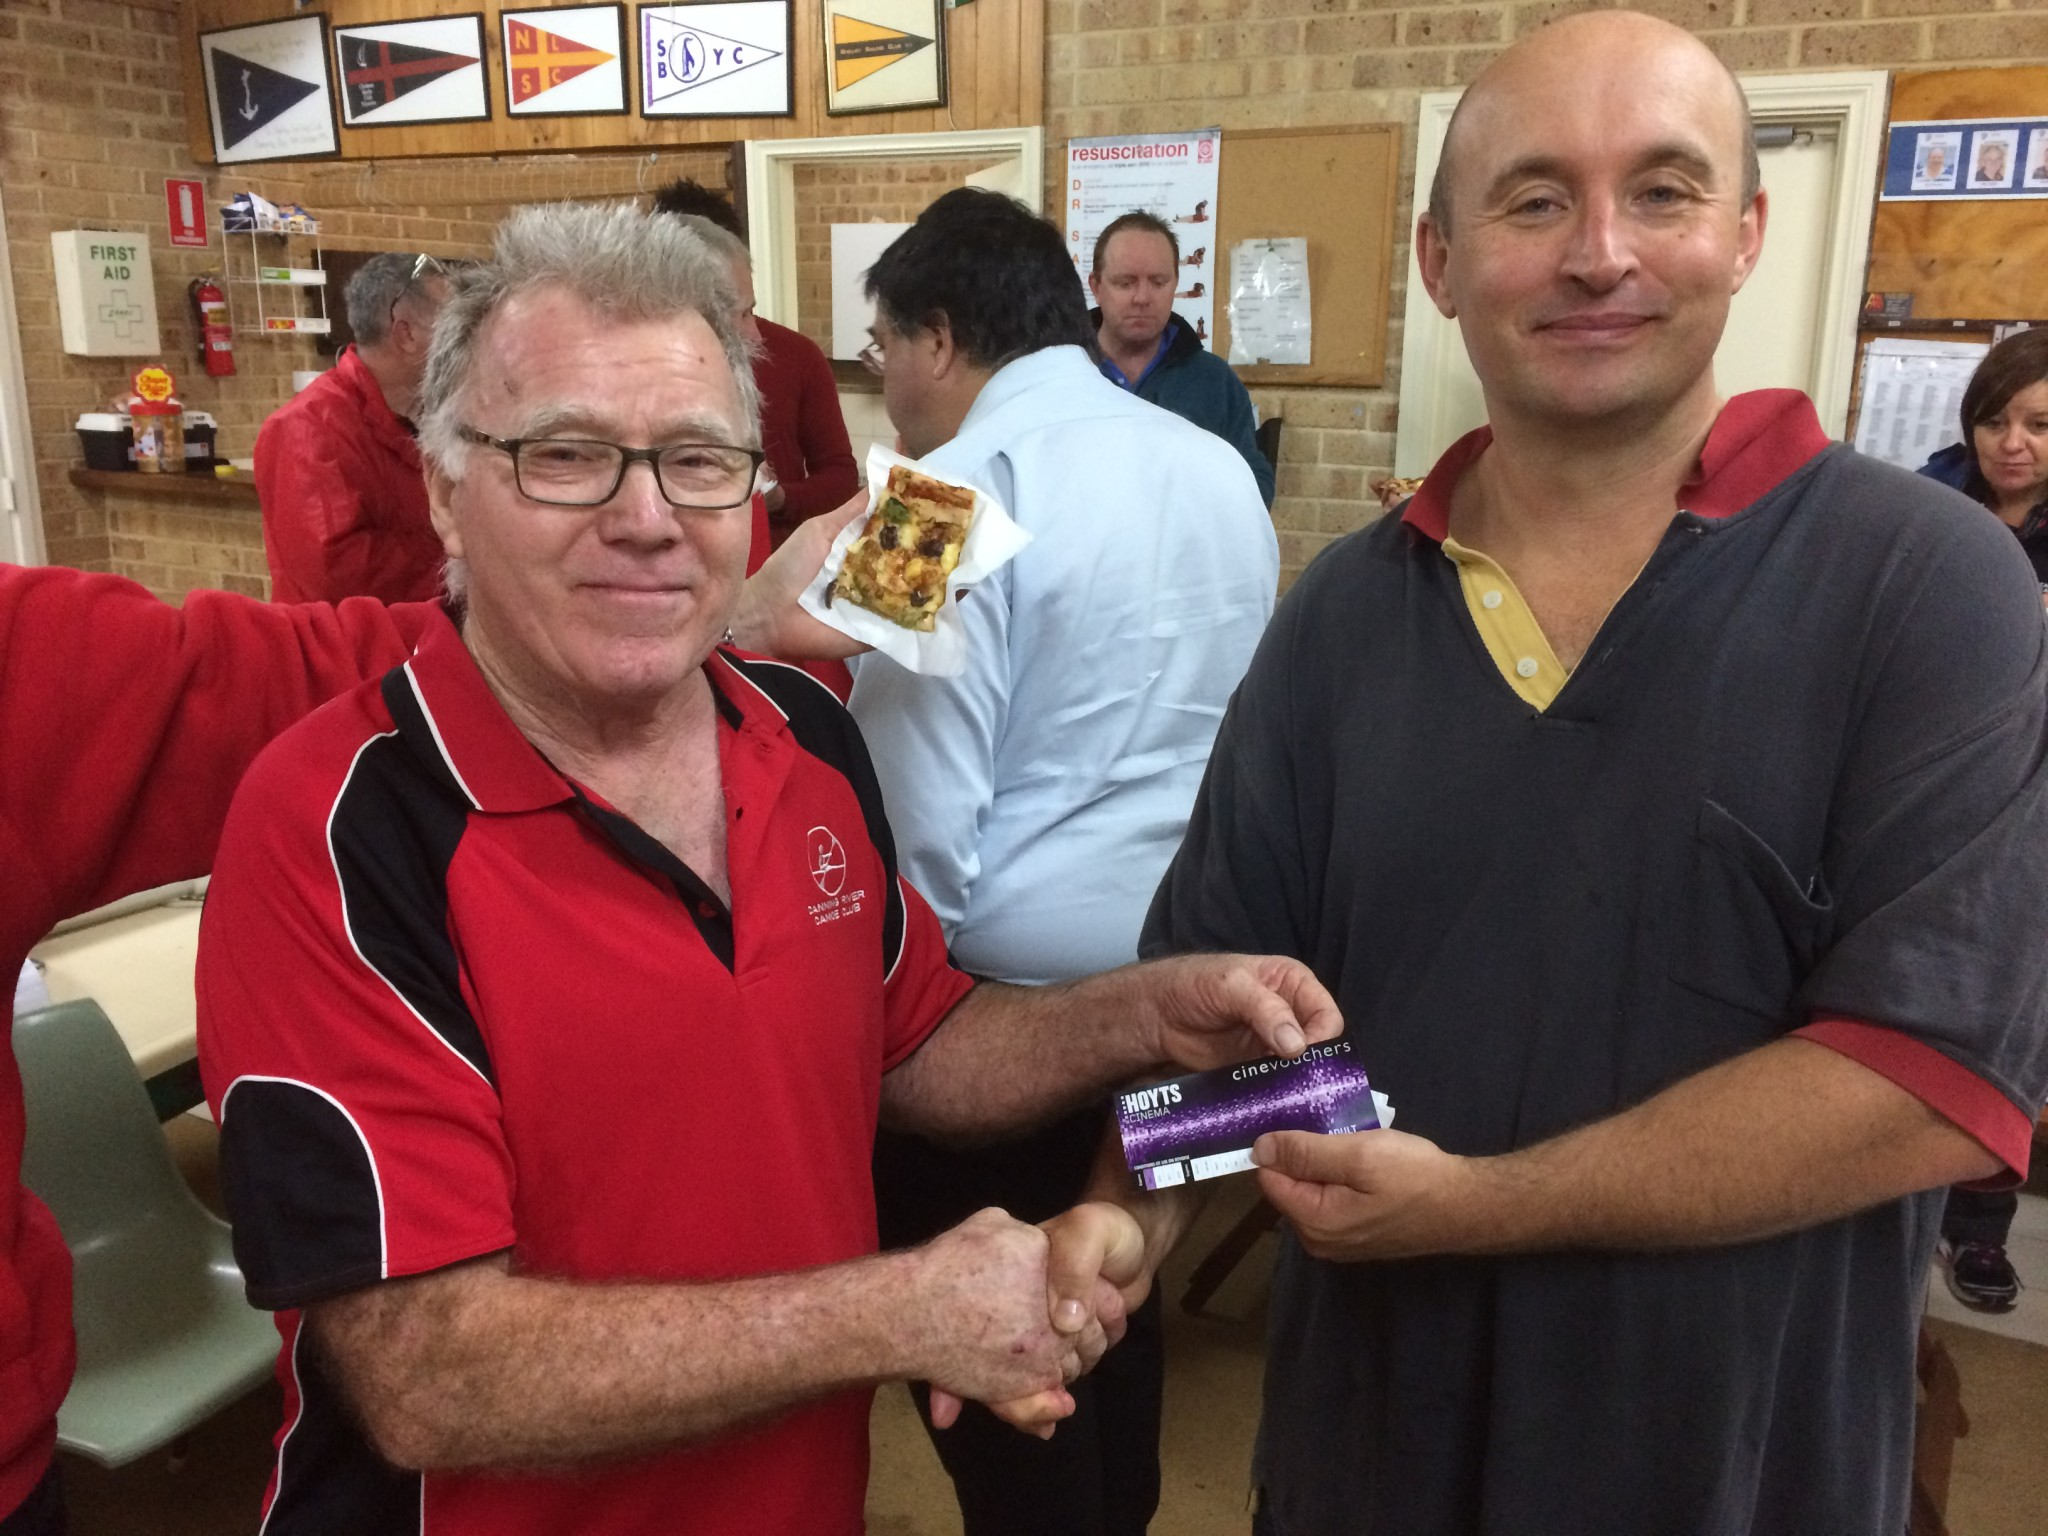 Tuesday 7th July 2015 : Club member David GArdiner presenting tonights winner Mike Galanty with a movie voucher